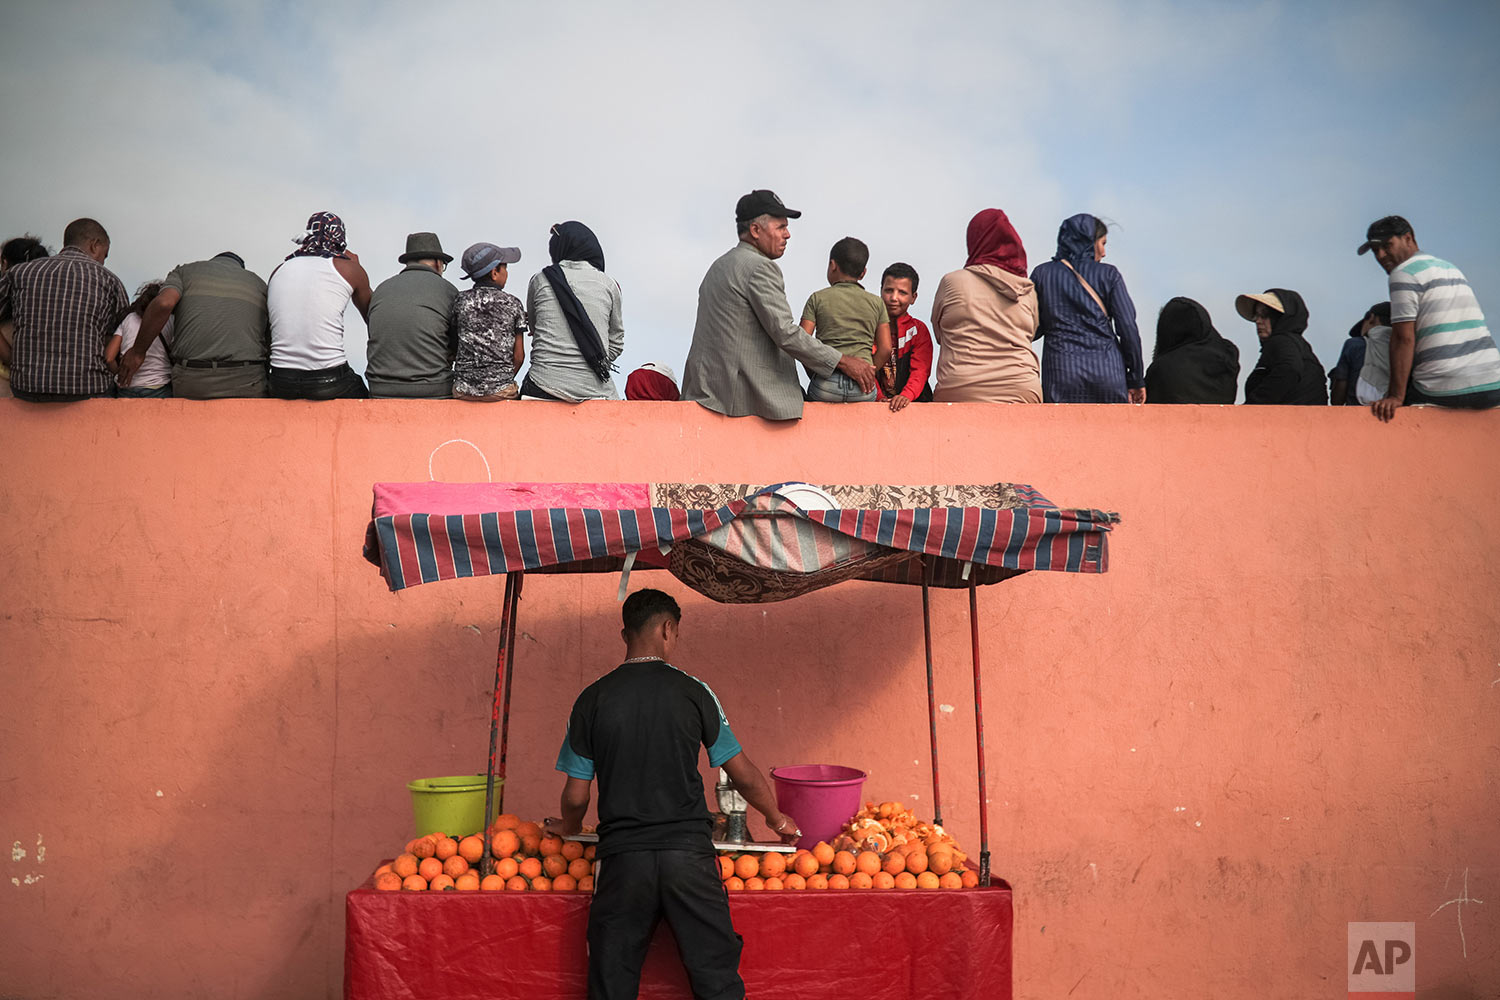 A vendor sells orange juice as people sit on a fence to watch a horsemanship show known as Fantasia or Tabourida, in the coastal town of El Jadida, Morocco, July 25, 2019. (AP Photo/Mosa'ab Elshamy)